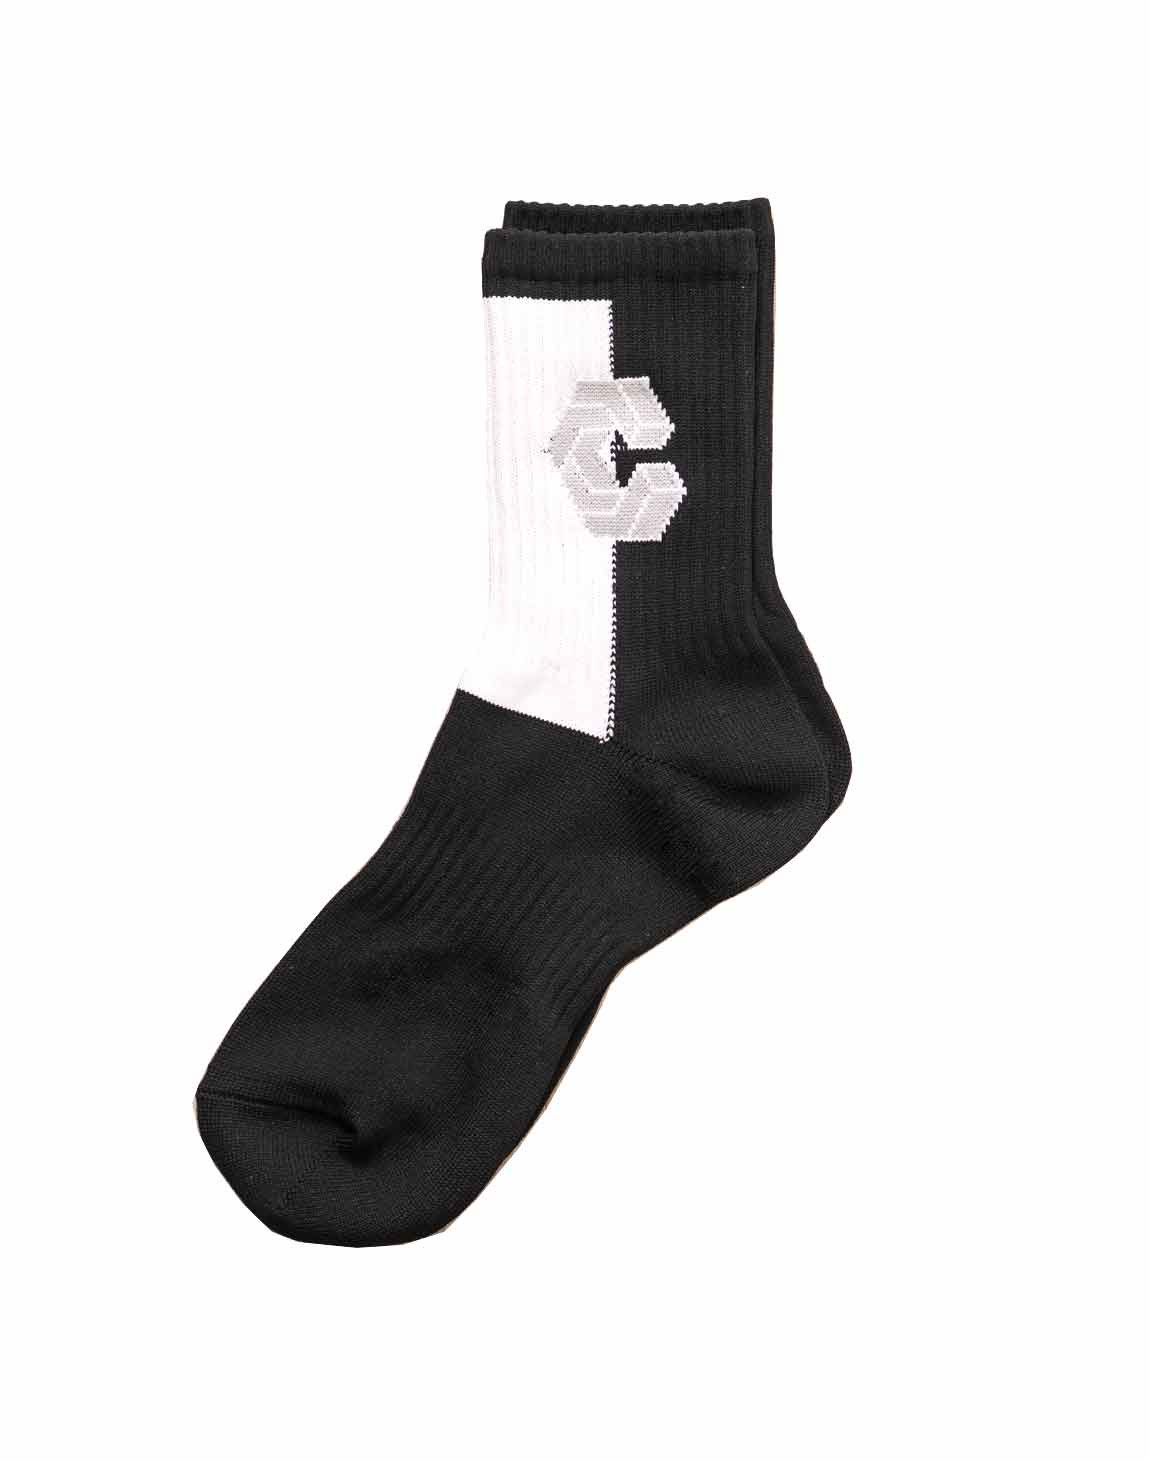 CRONOS HALF COLOR SOCKS【BLACK】